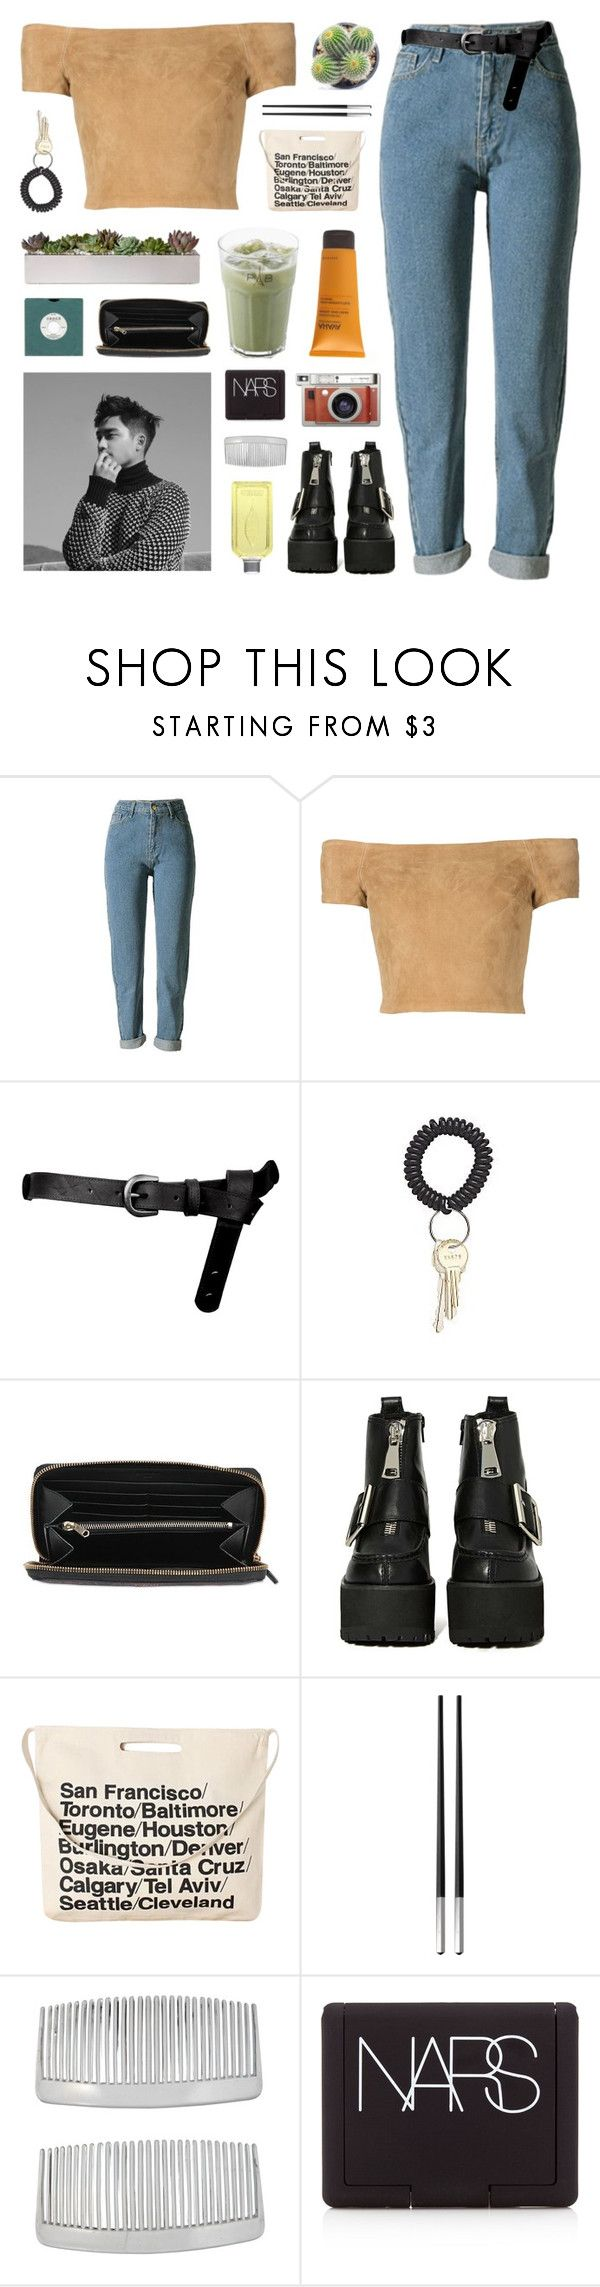 """""""baby don't say you want no liar / COLLAB WITH CLAUDS"""" by hhuricane ❤ liked on Polyvore featuring Alice + Olivia, ASOS, Ahava, Givenchy, Jeffrey Campbell, Chicnova Fashion, Christofle, John Lewis, NARS Cosmetics and Lomography"""